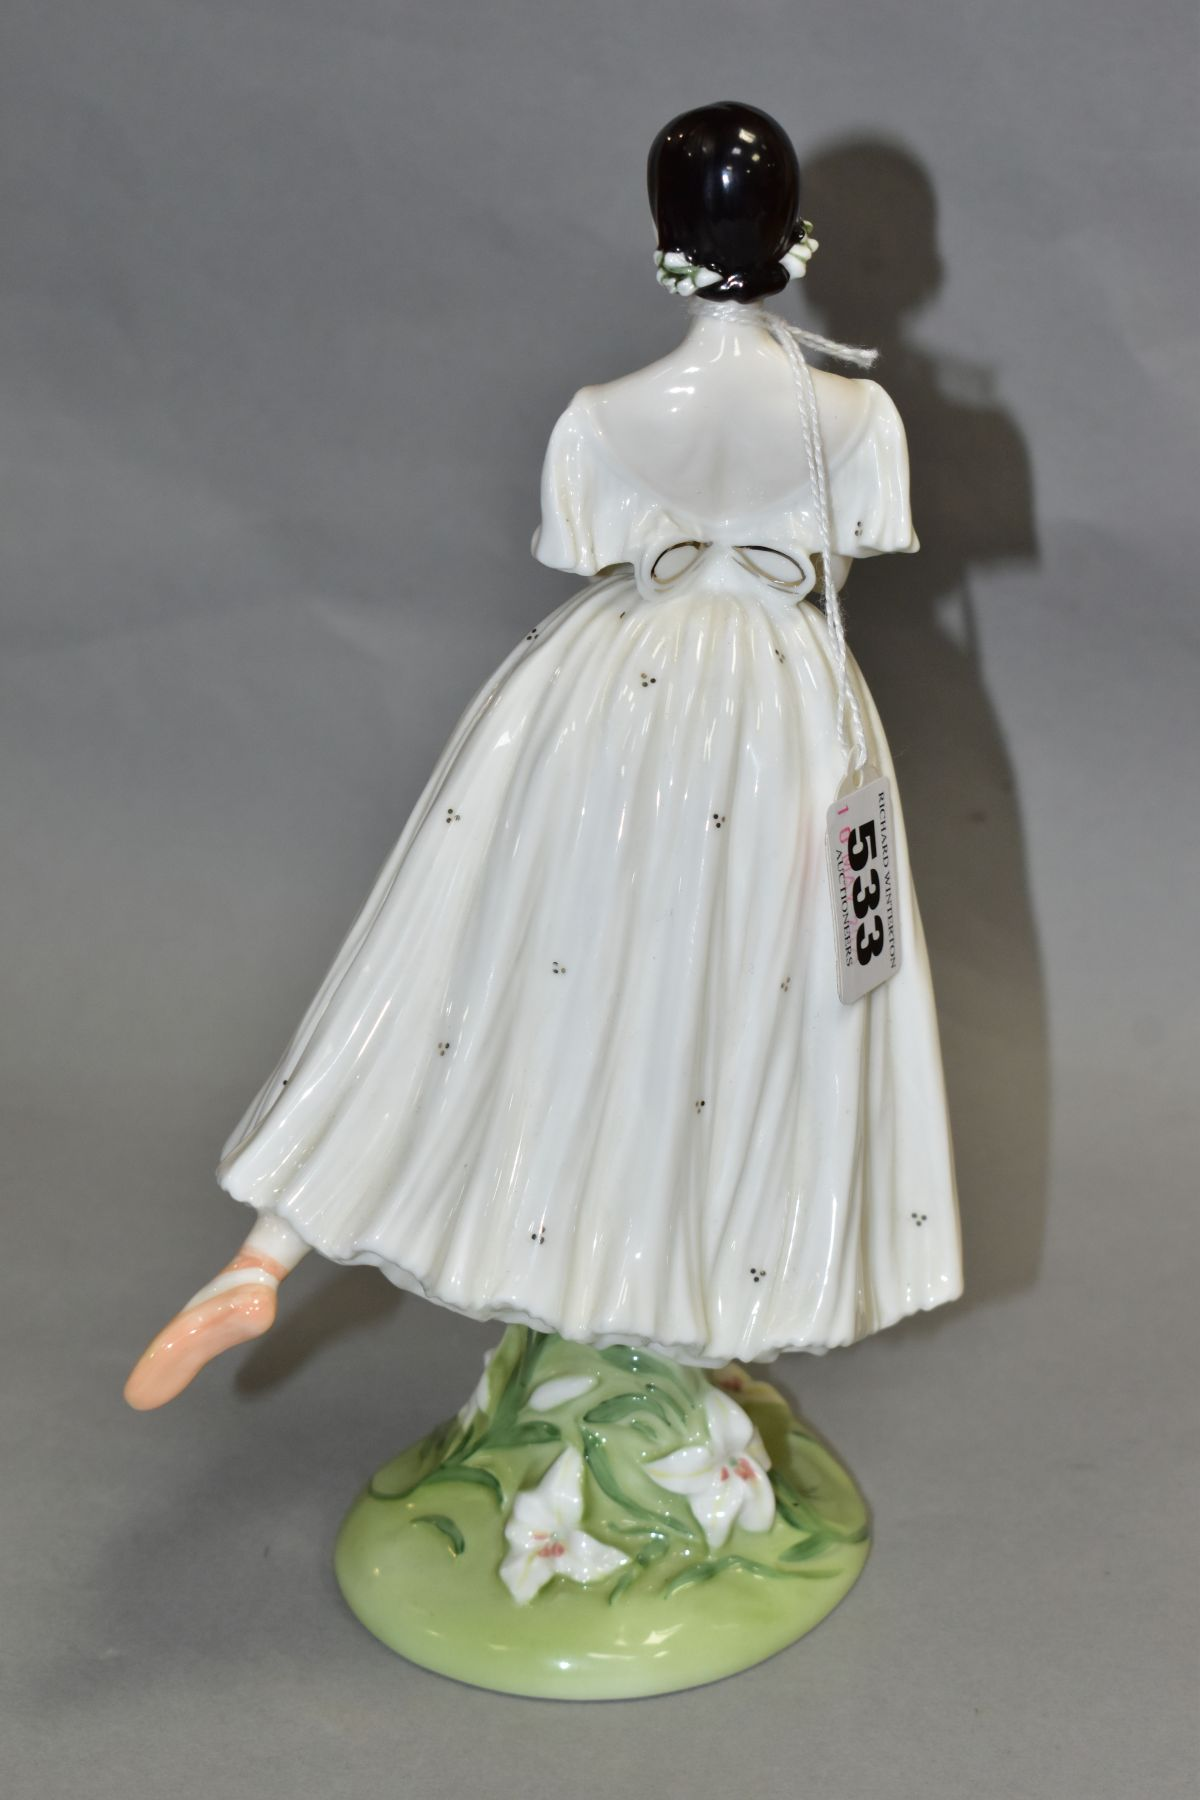 A LIMITED EDITION COALPORT FIGURE 'Dame Alicia Markova' from The Royal Academy of Dancing Collection - Image 3 of 4